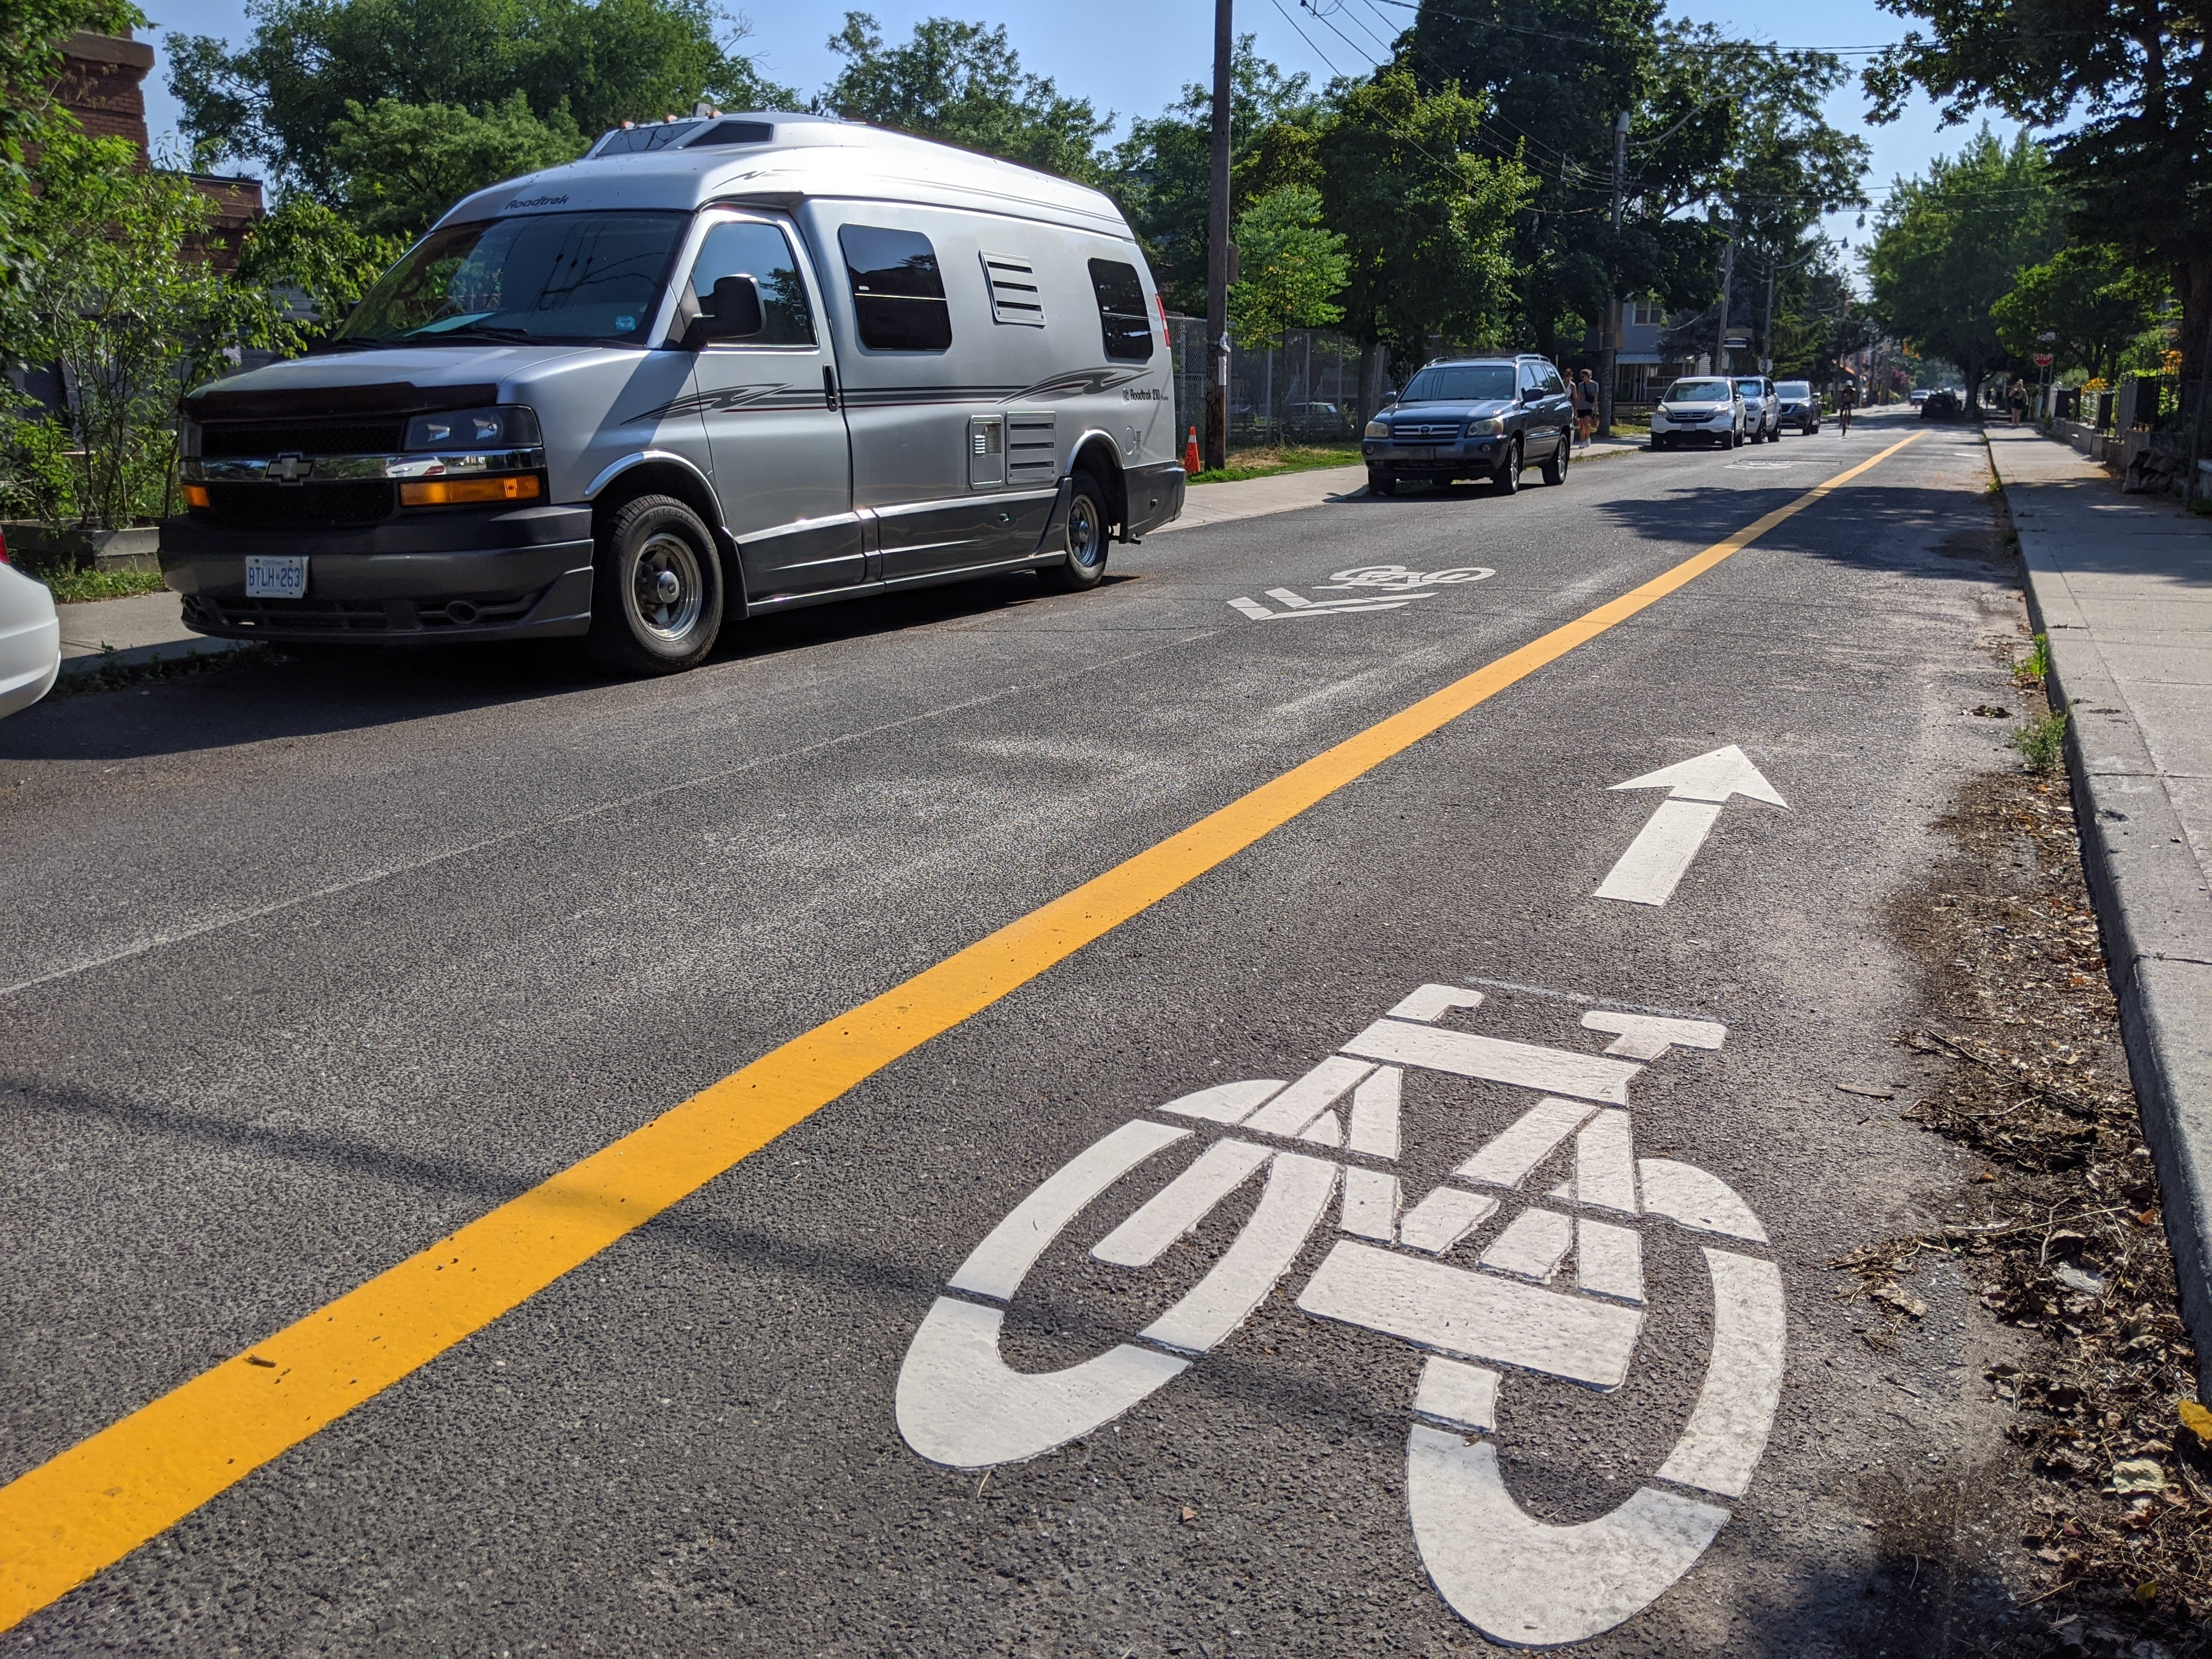 A contraflow bike lane heads up and to the right